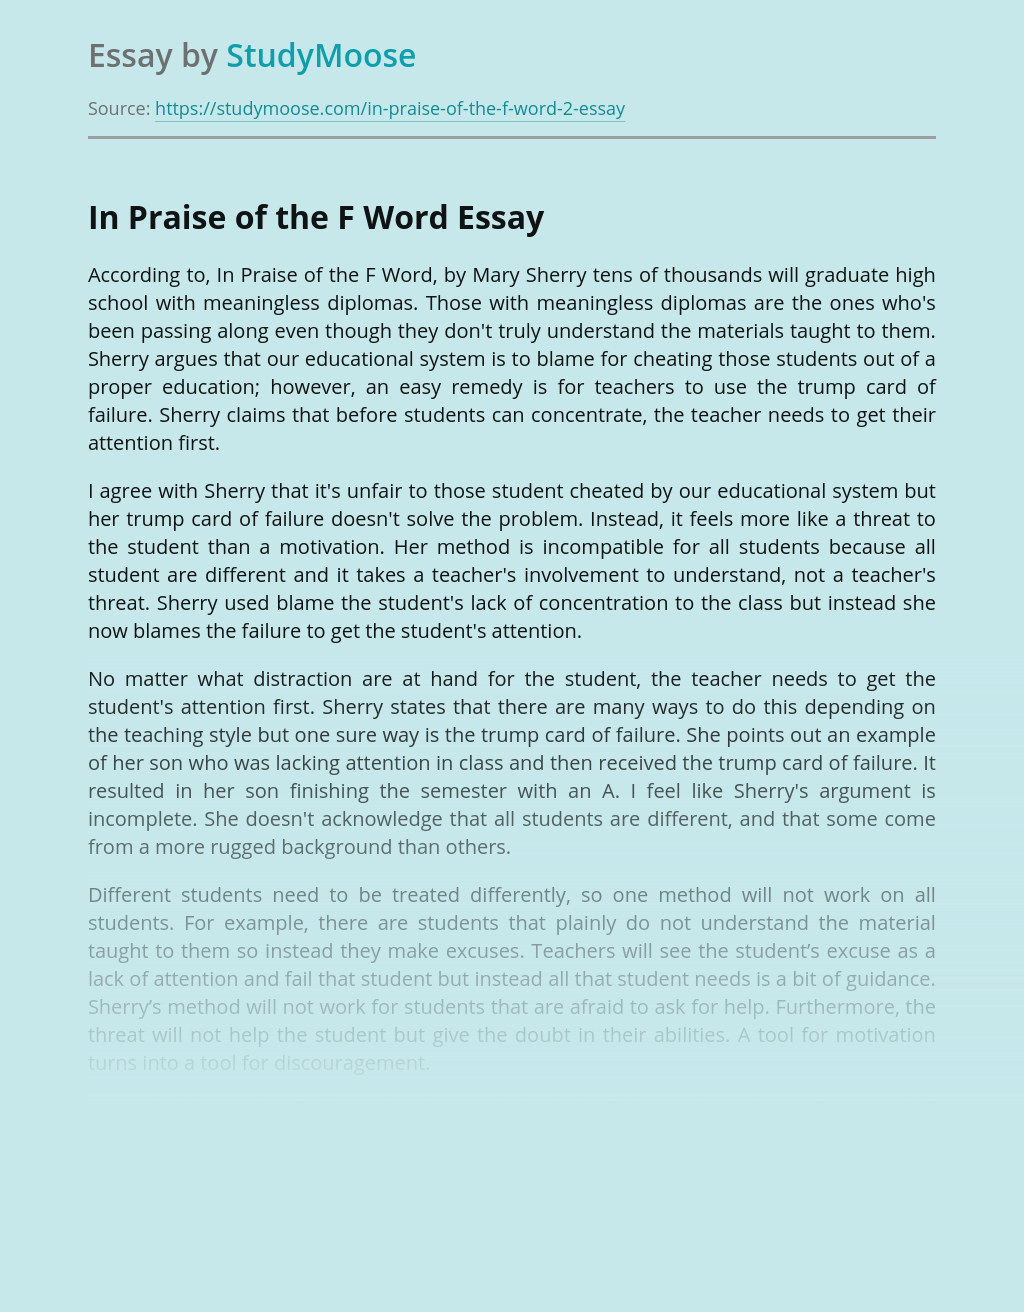 In Praise Of The F Word by Mary Sherry